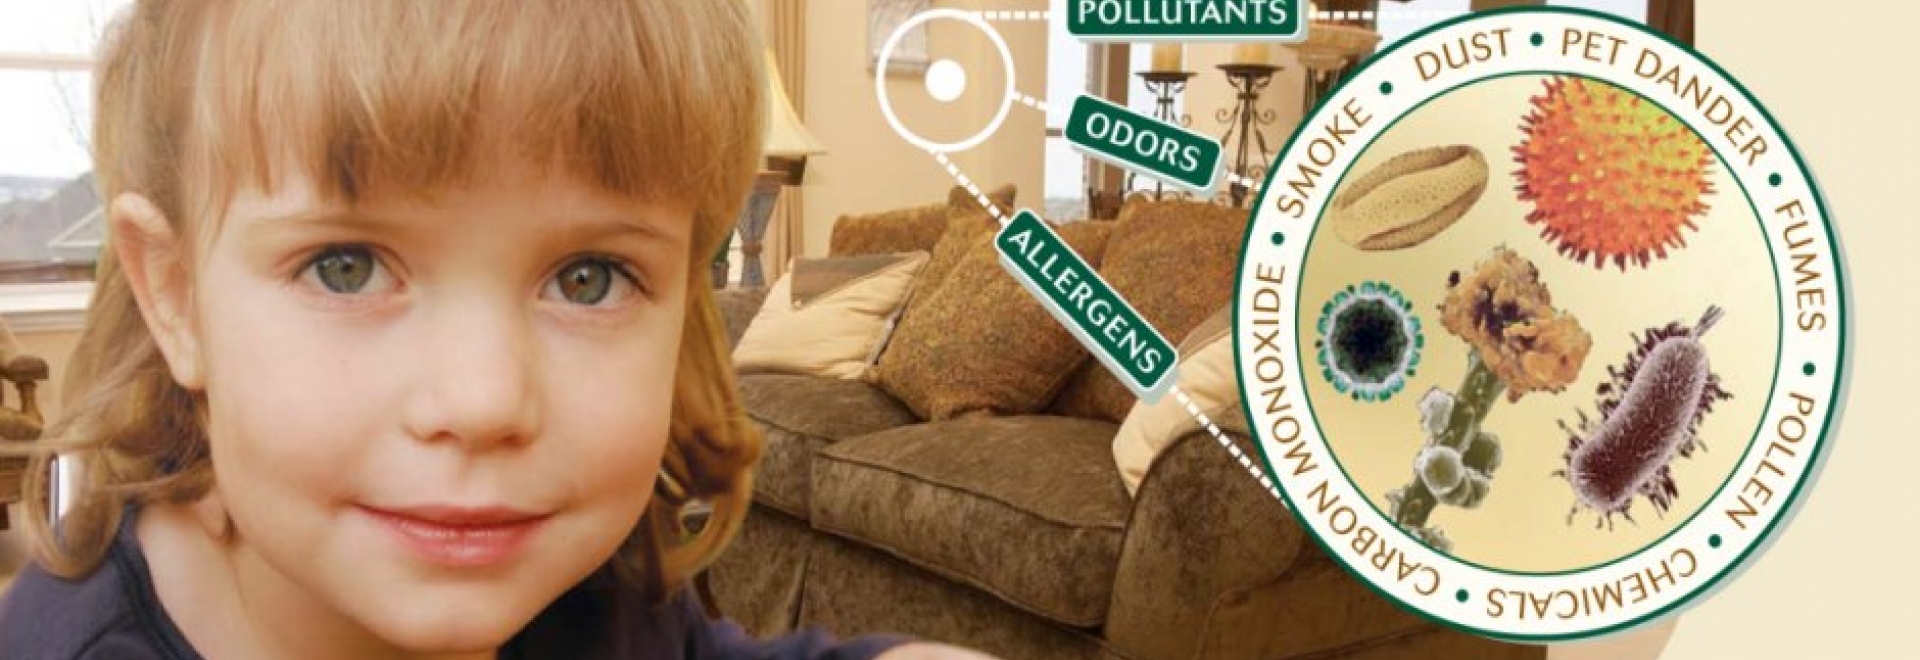 child with indoor air quality explanation